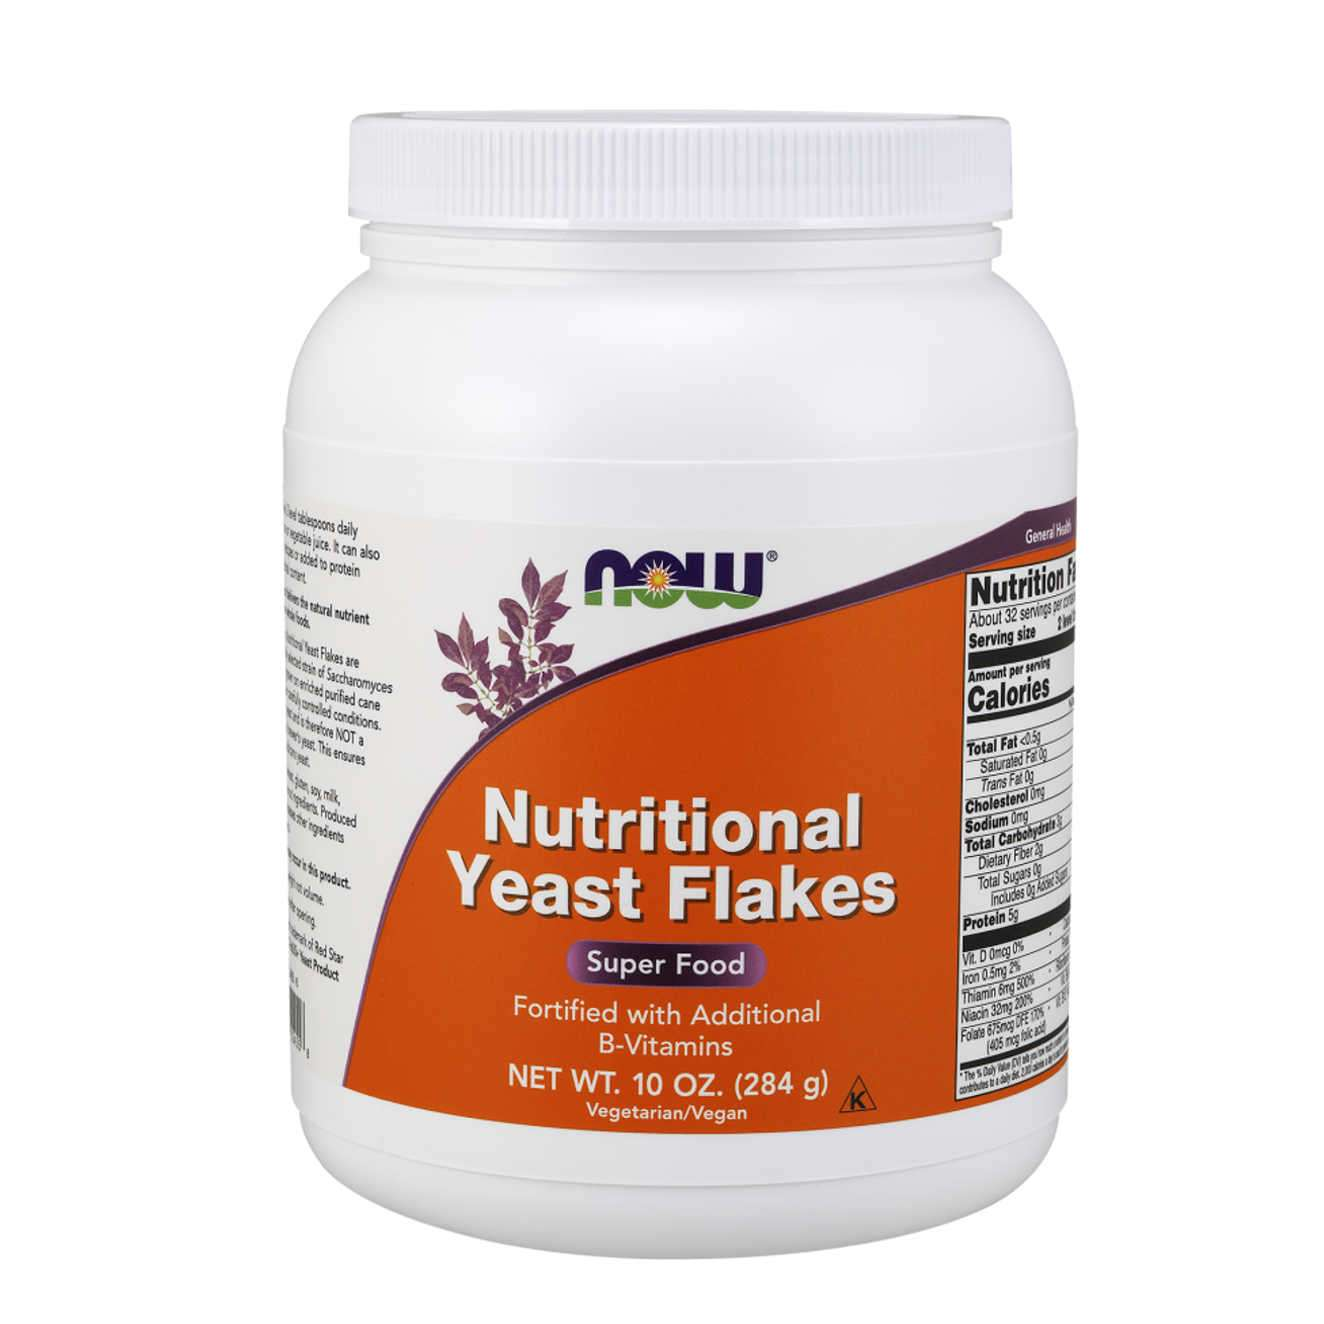 NUTRITIONAL YEAST FLAKES - 284g